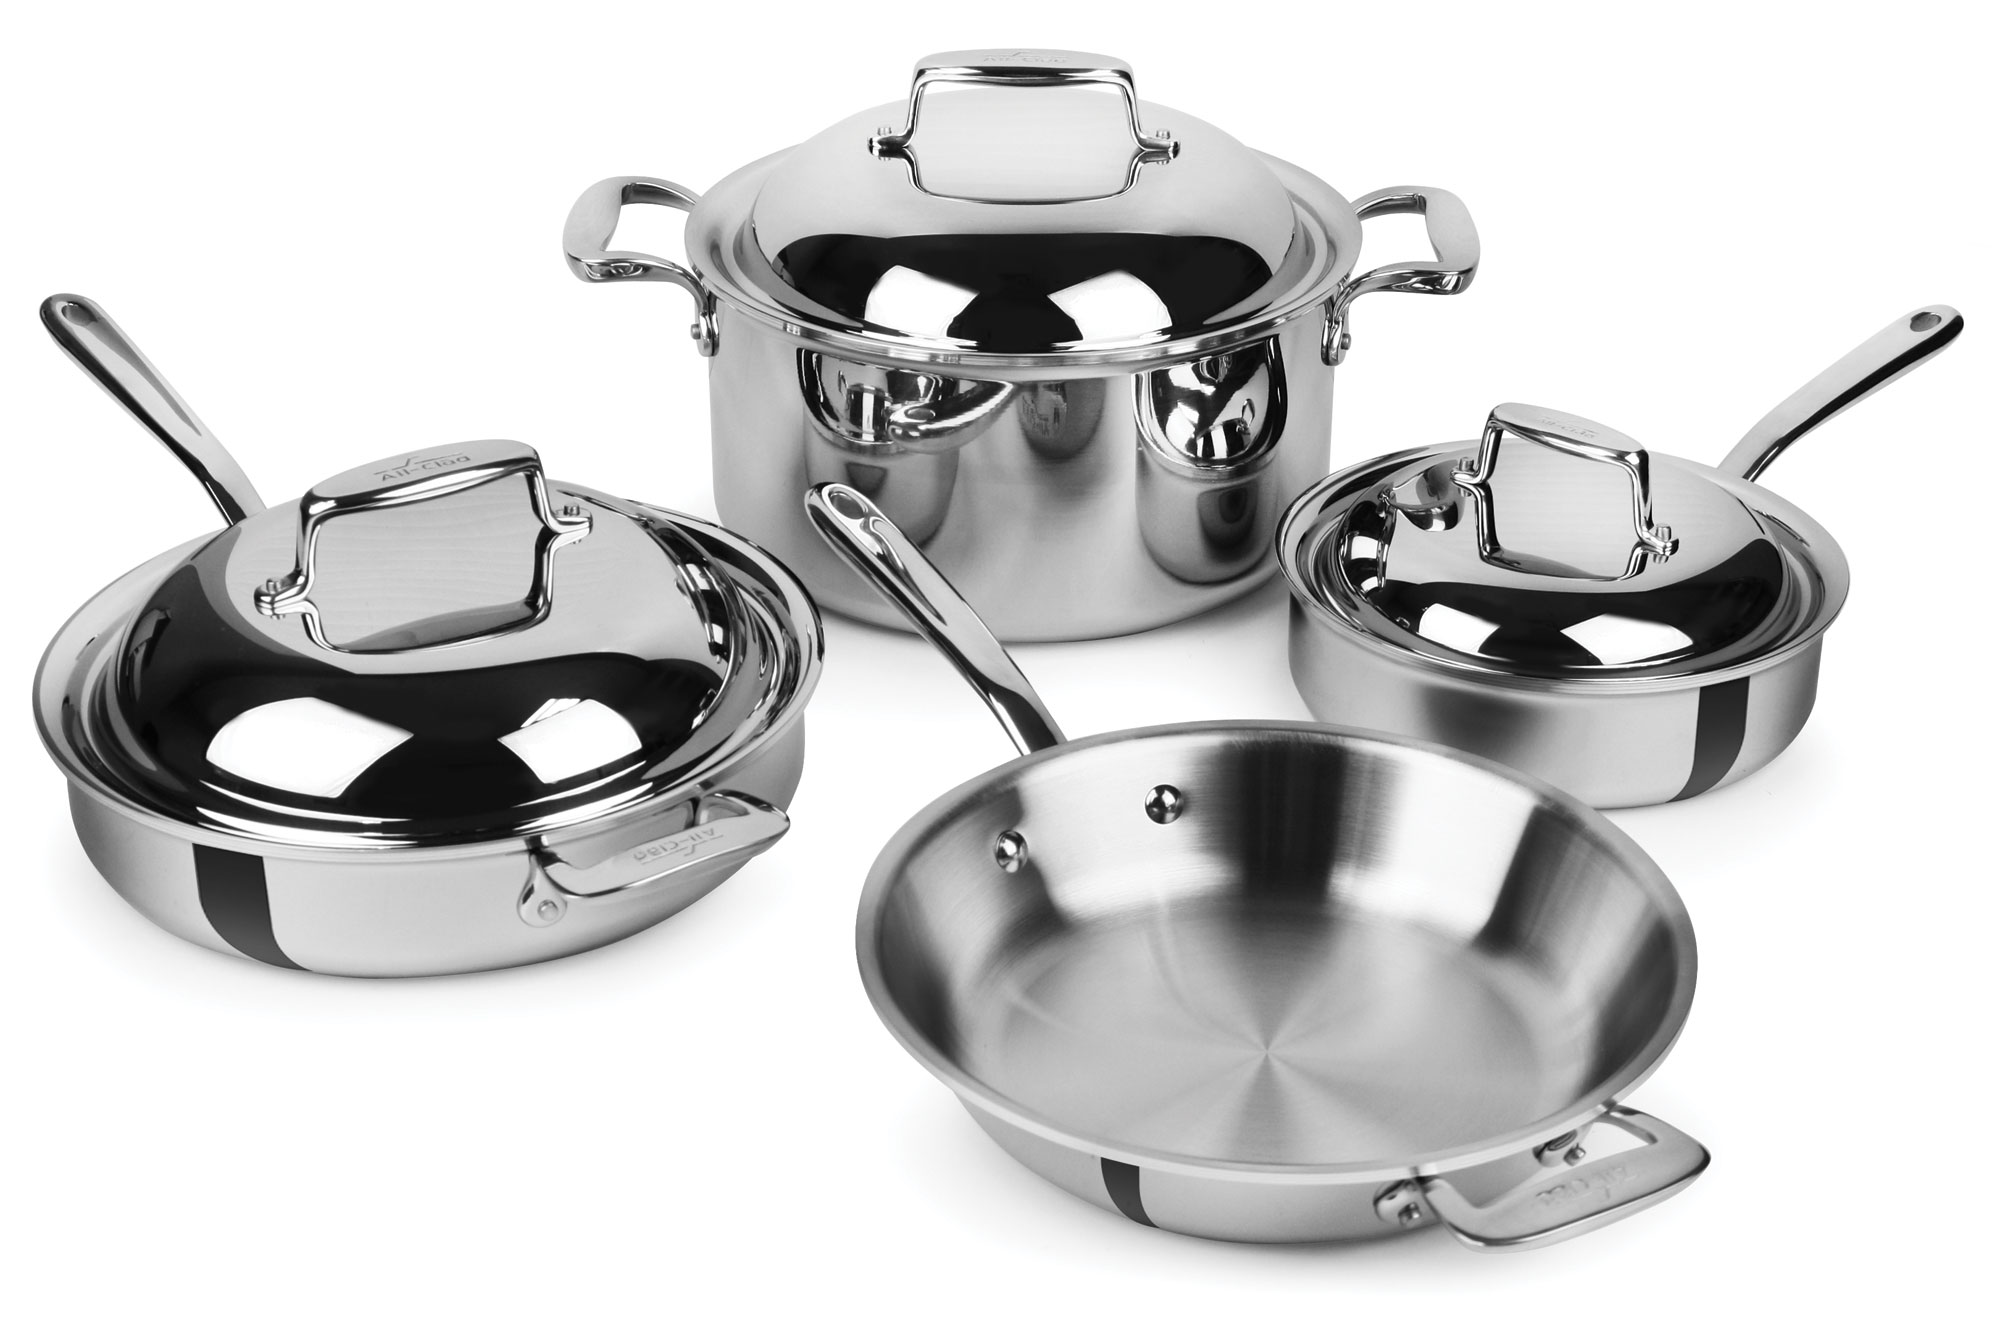 All clad stainless steel cookware sets - All Clad Stainless Steel Cookware Sets 23